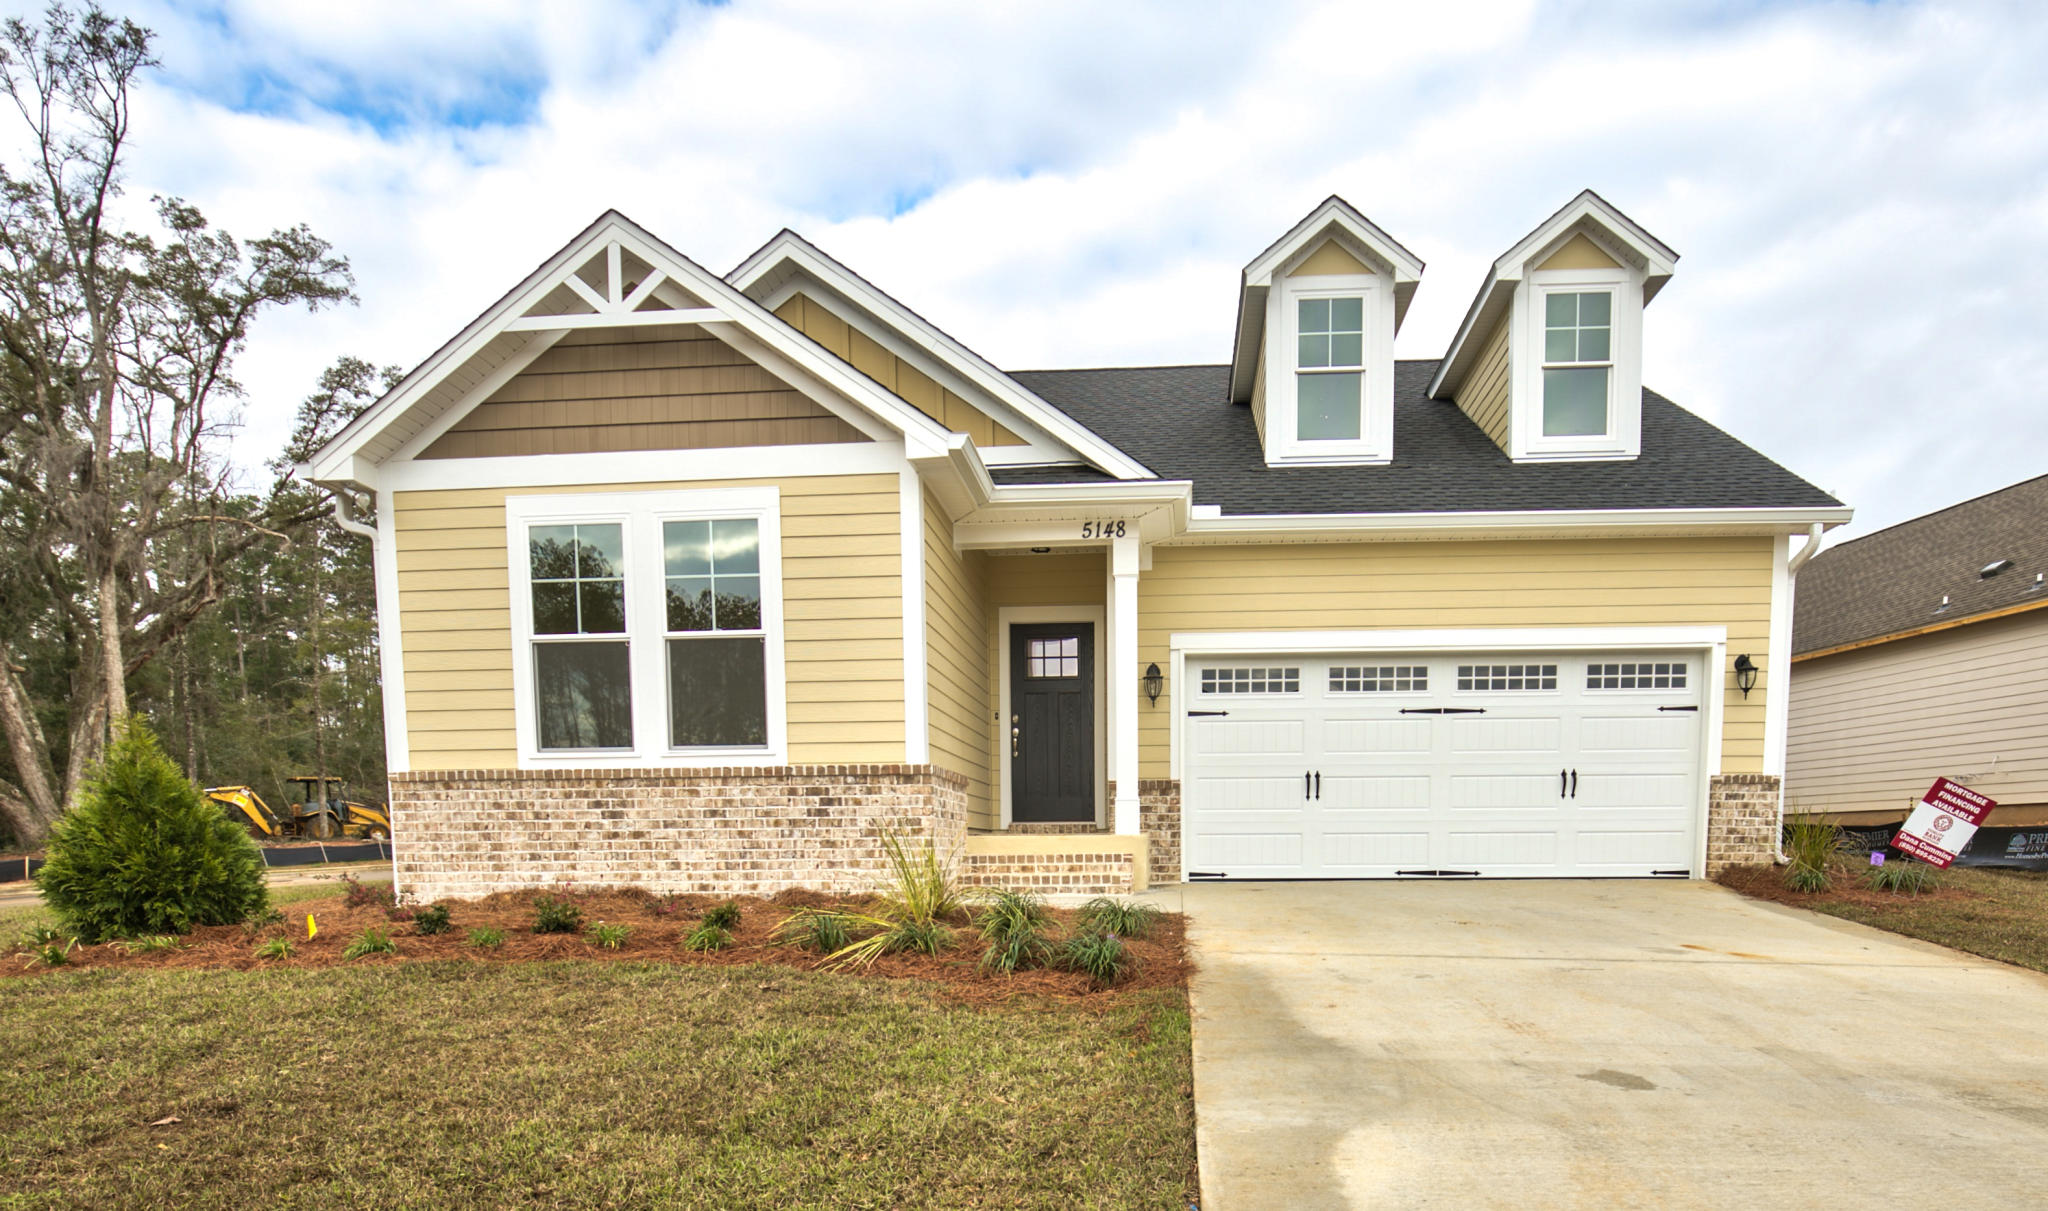 Woodland Place is the perfect community, offering energy-efficient homes at affordable prices.